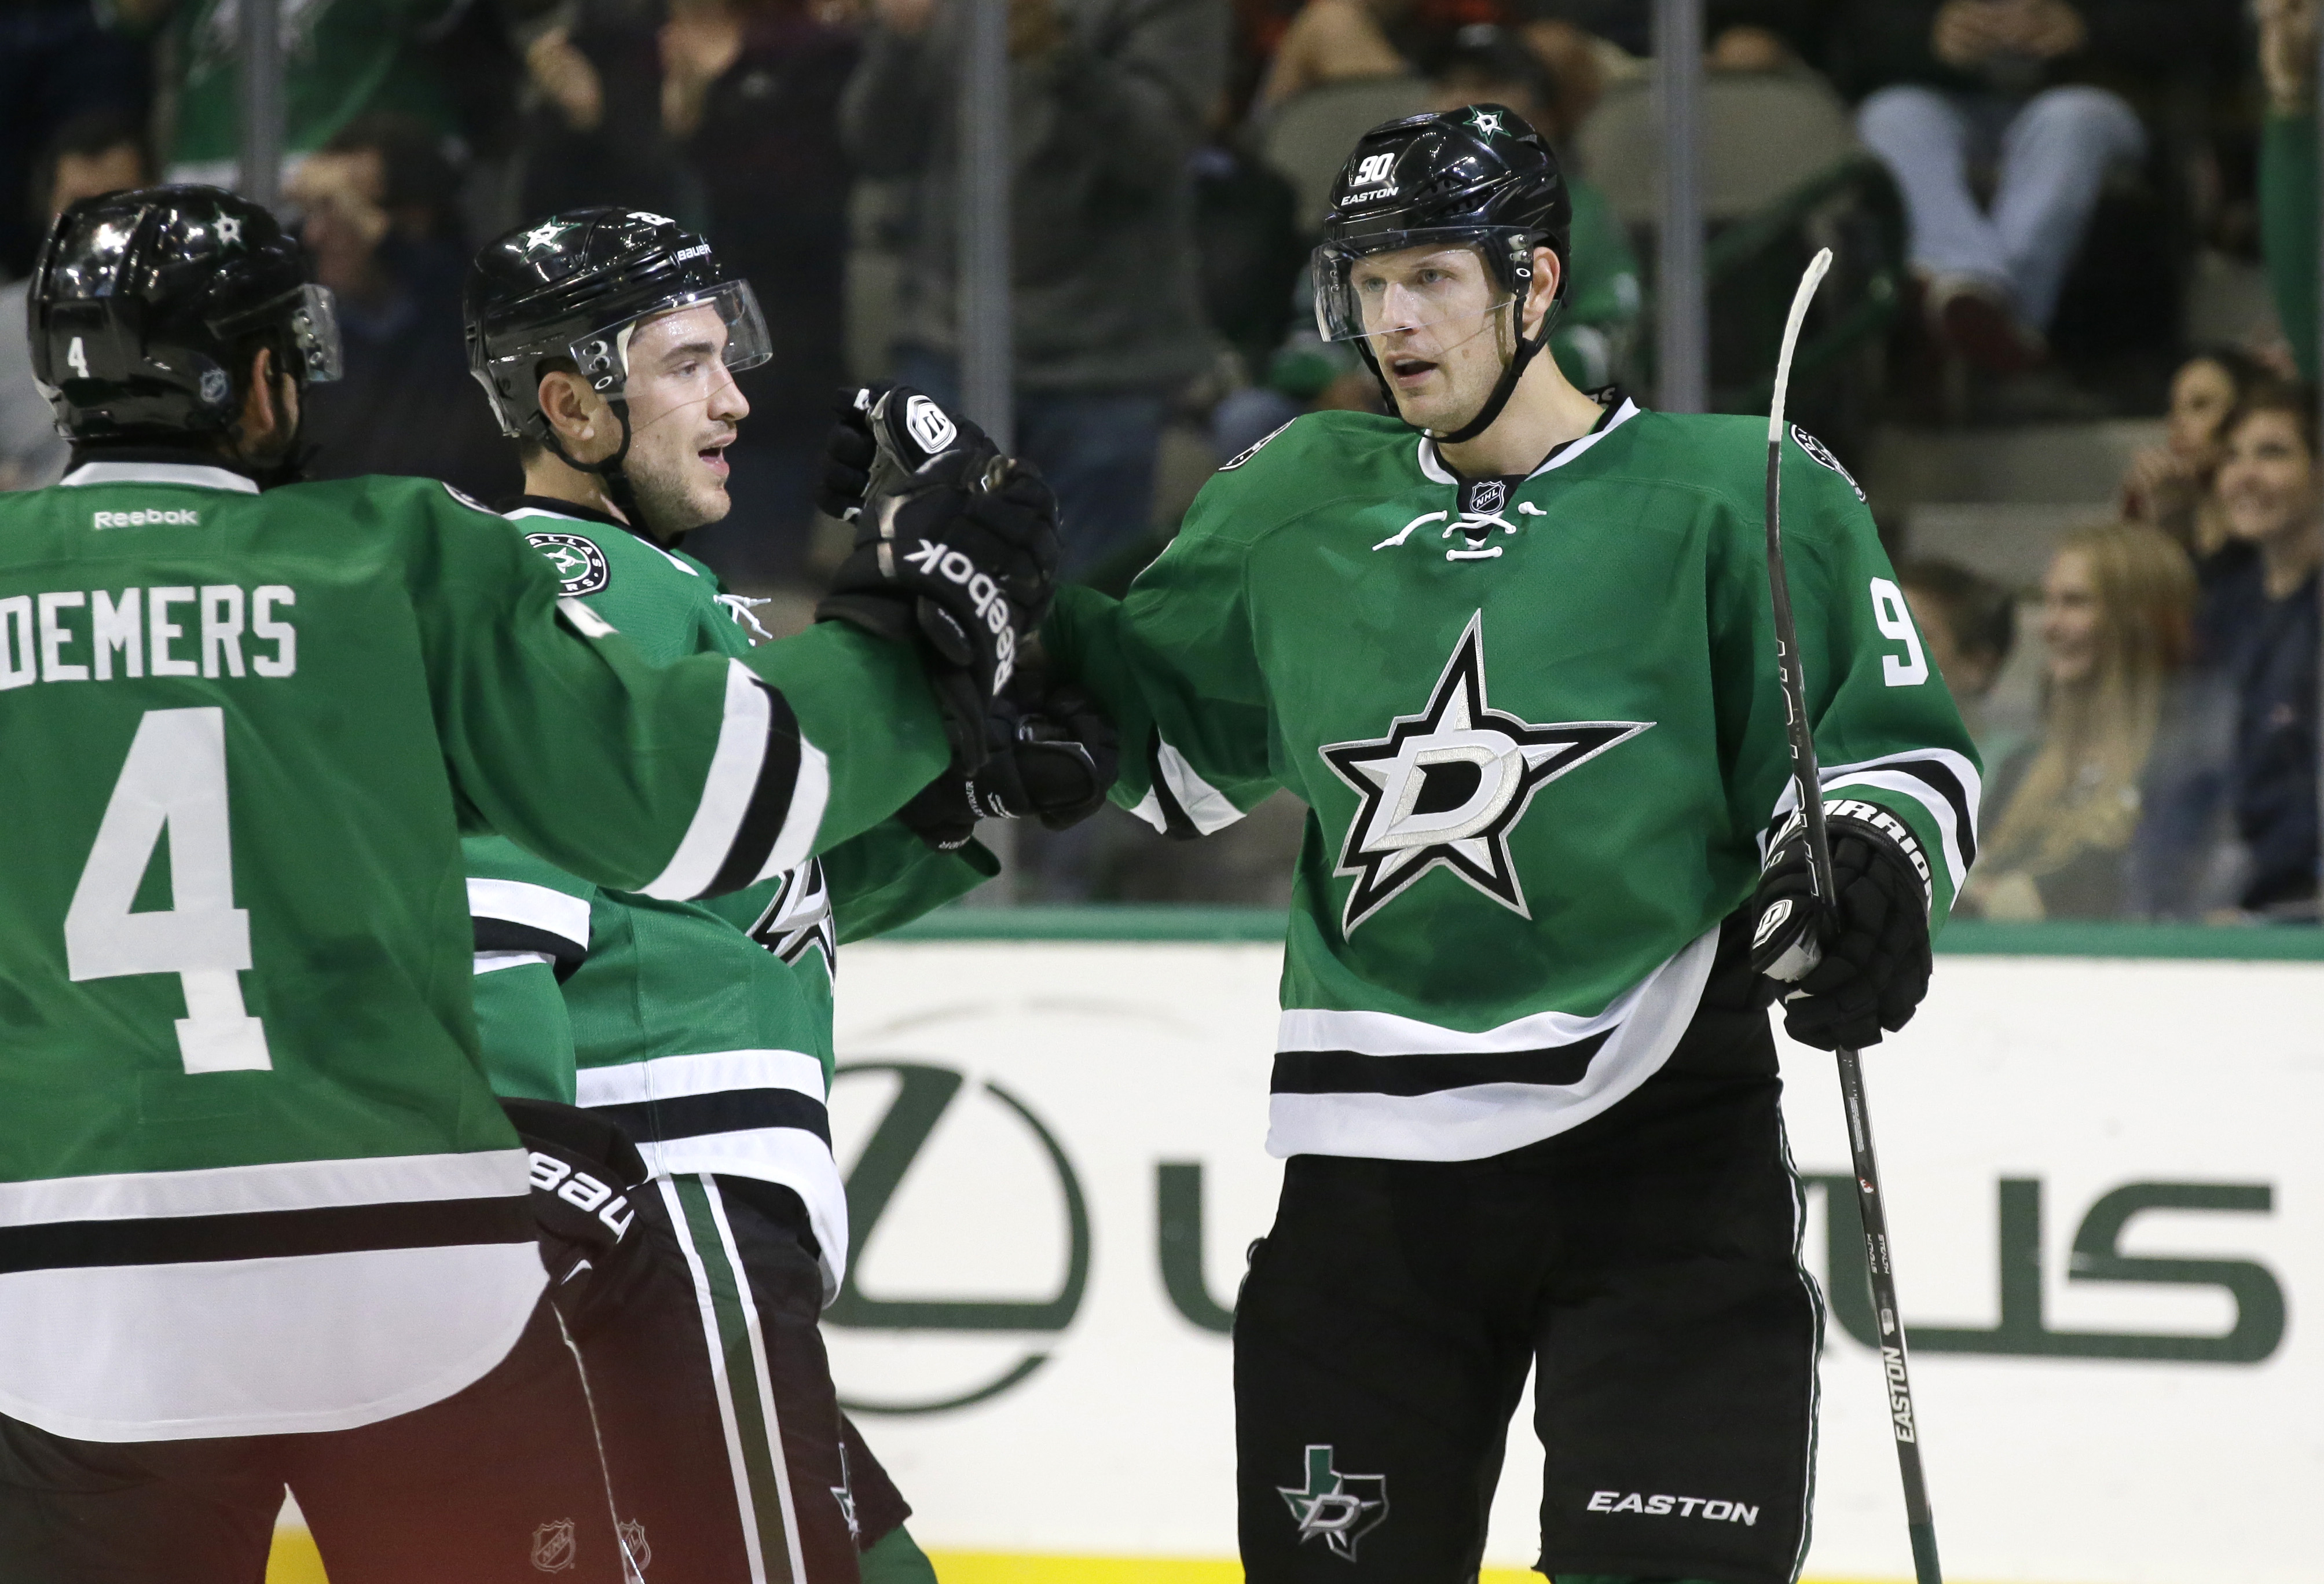 Dallas Stars center Jason Spezza (90) celebrates his goal with teammates Jason Demers (4) and Colton Sceviour during the first period of an NHL hockey game  against the Edmonton Oilers Tuesday, Oct. 13, 2015, in Dallas. (AP Photo/LM Otero)